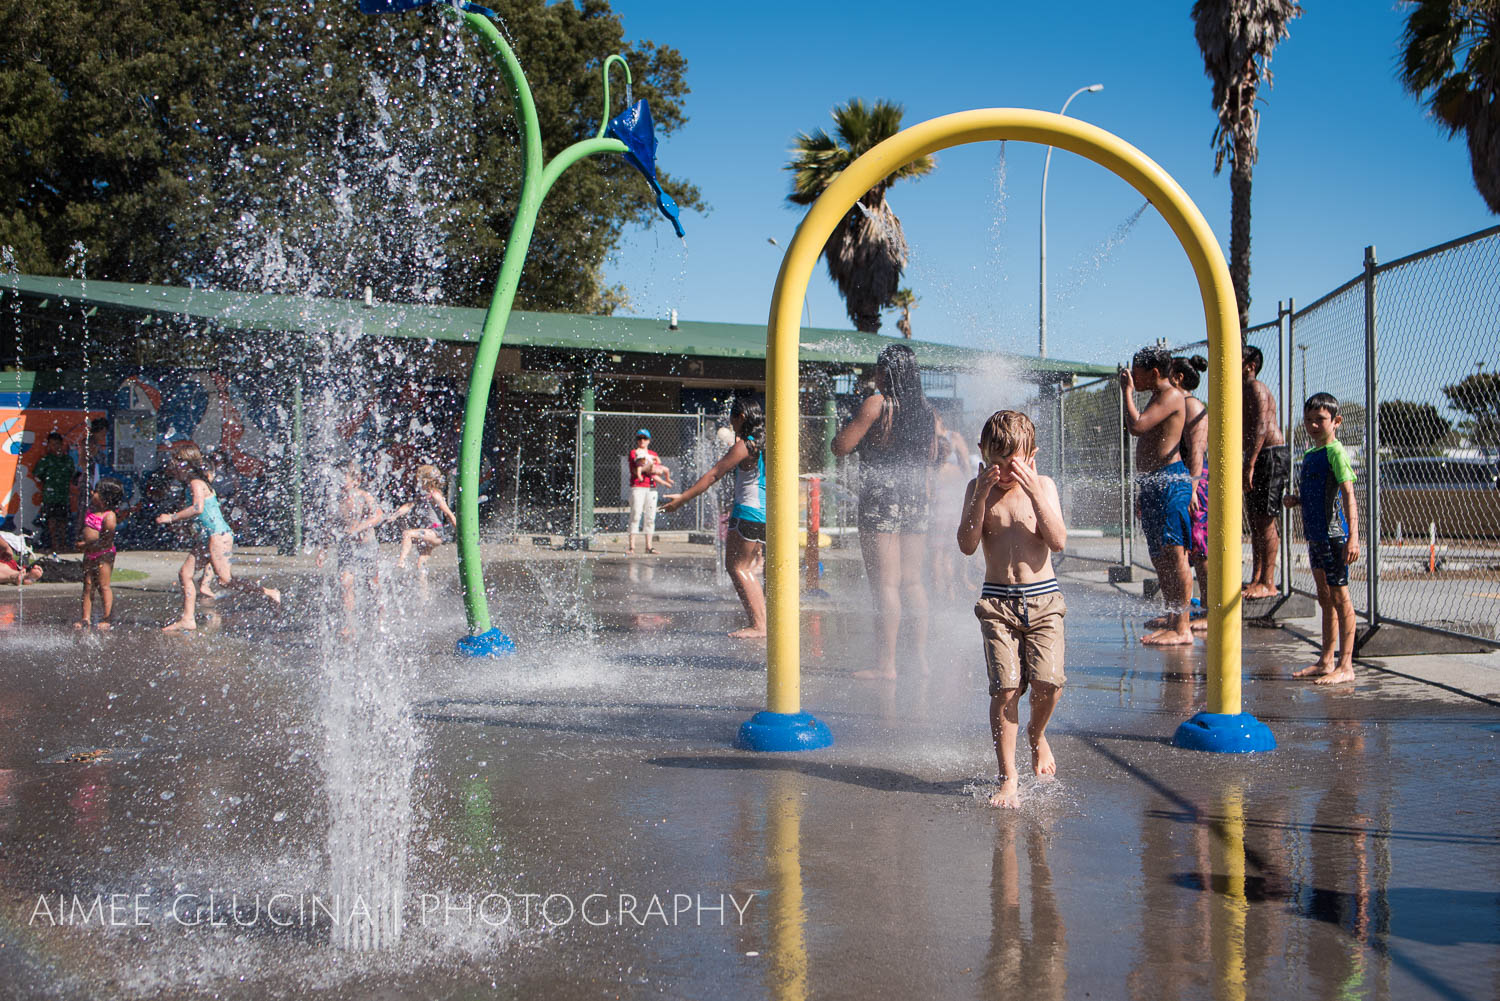 The splash pad was chaotic and full of colour and movement.